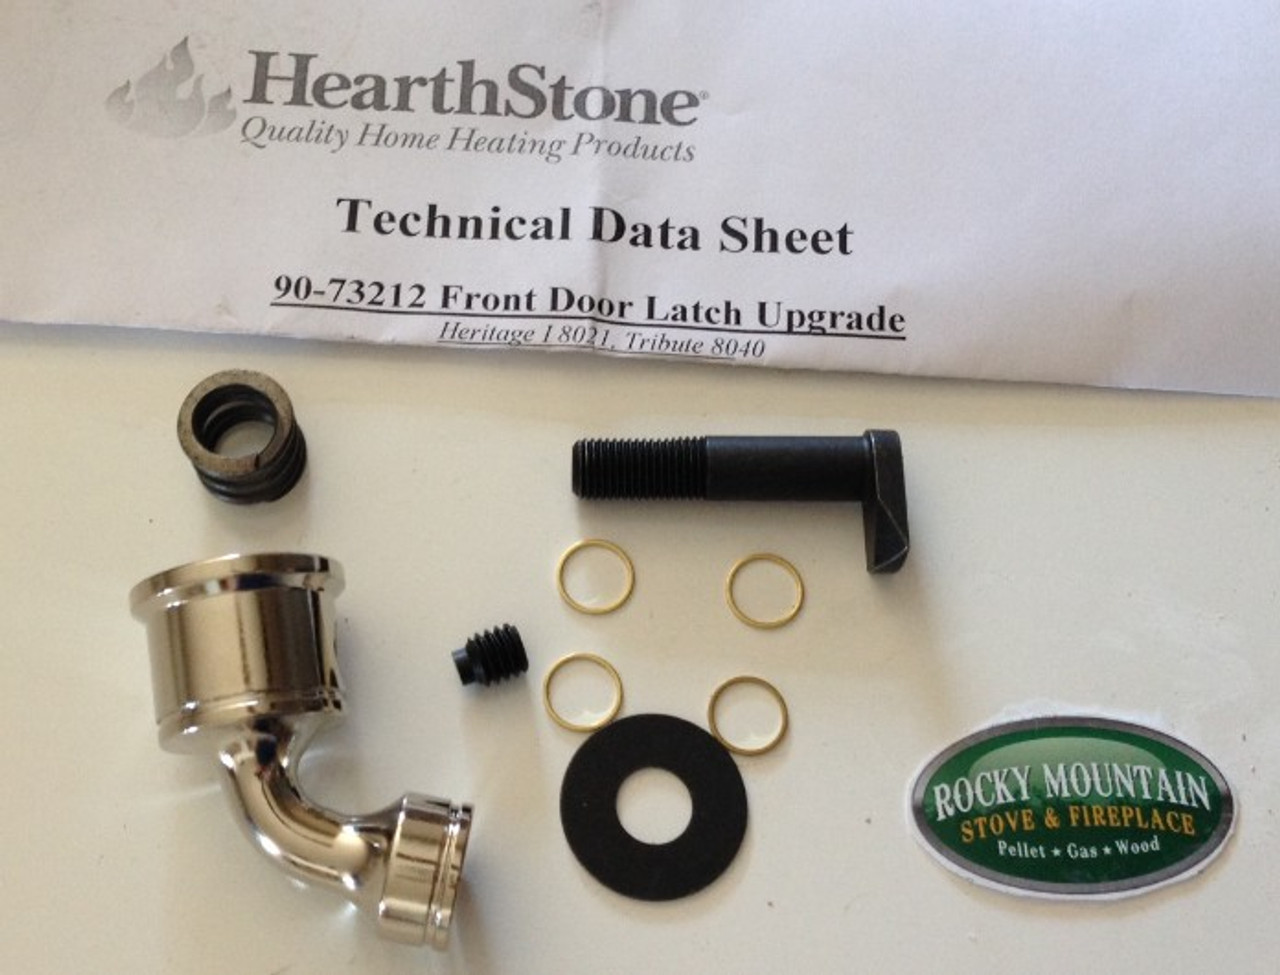 HearthStone 90-73212 Front Door Latch